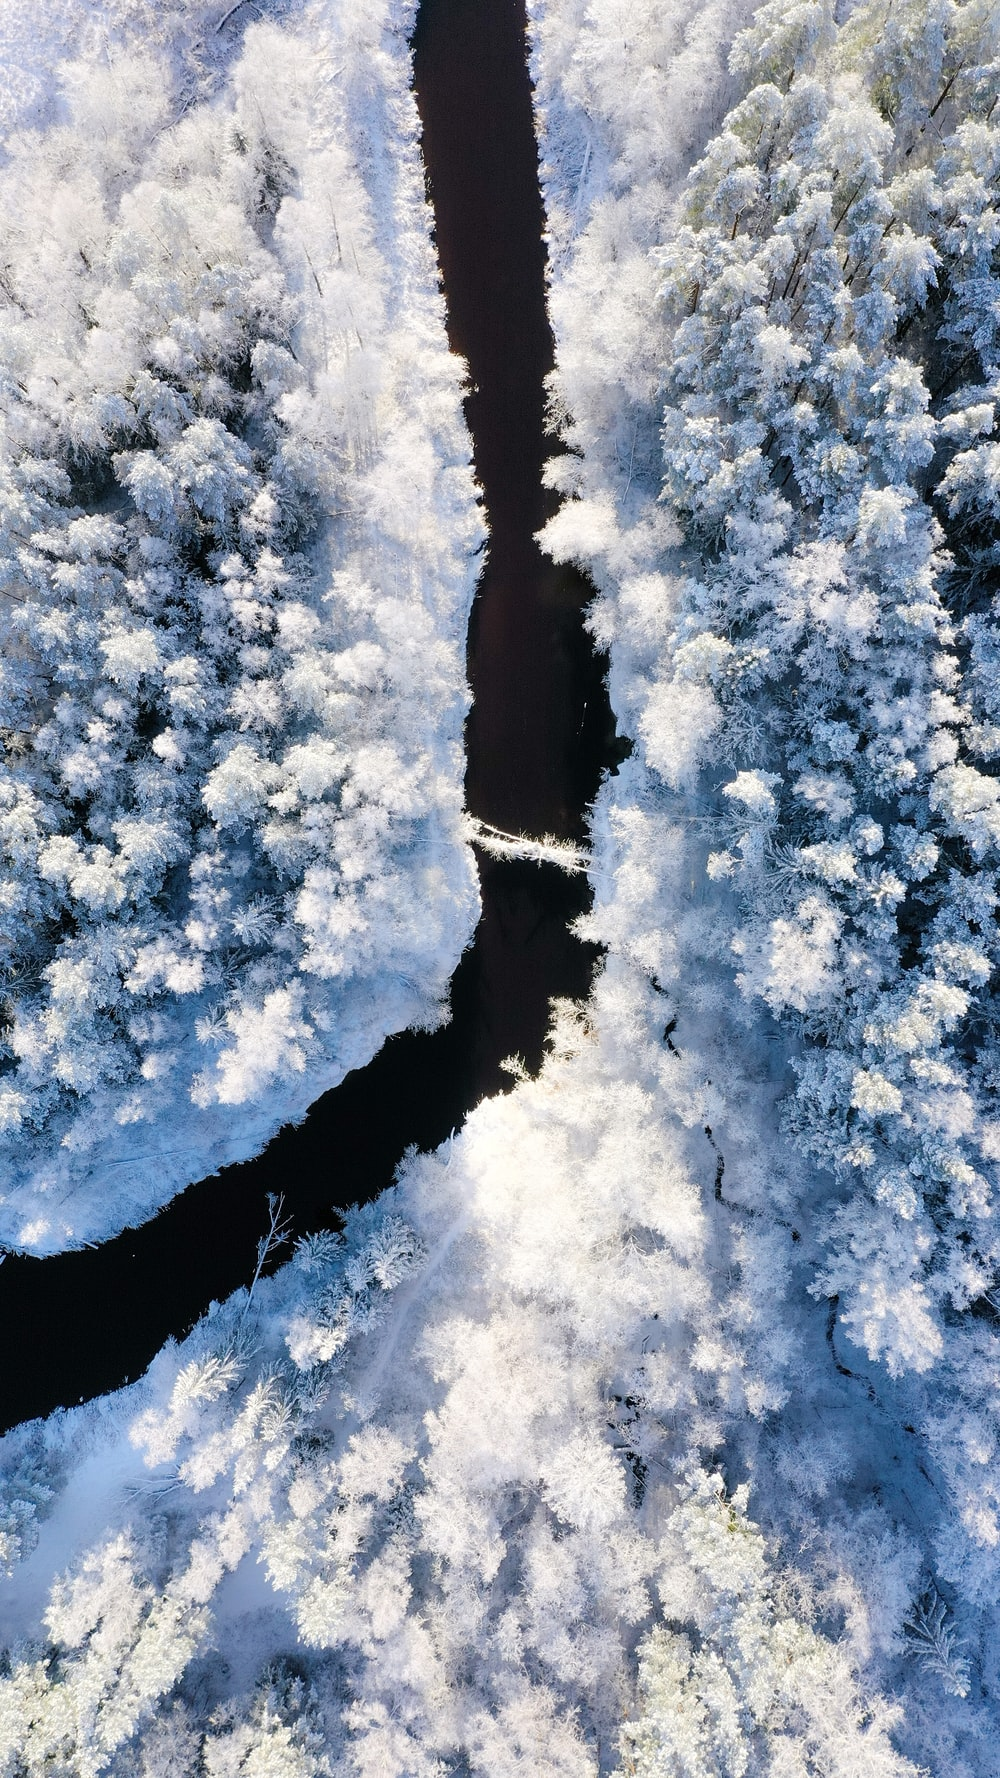 river near snow forest